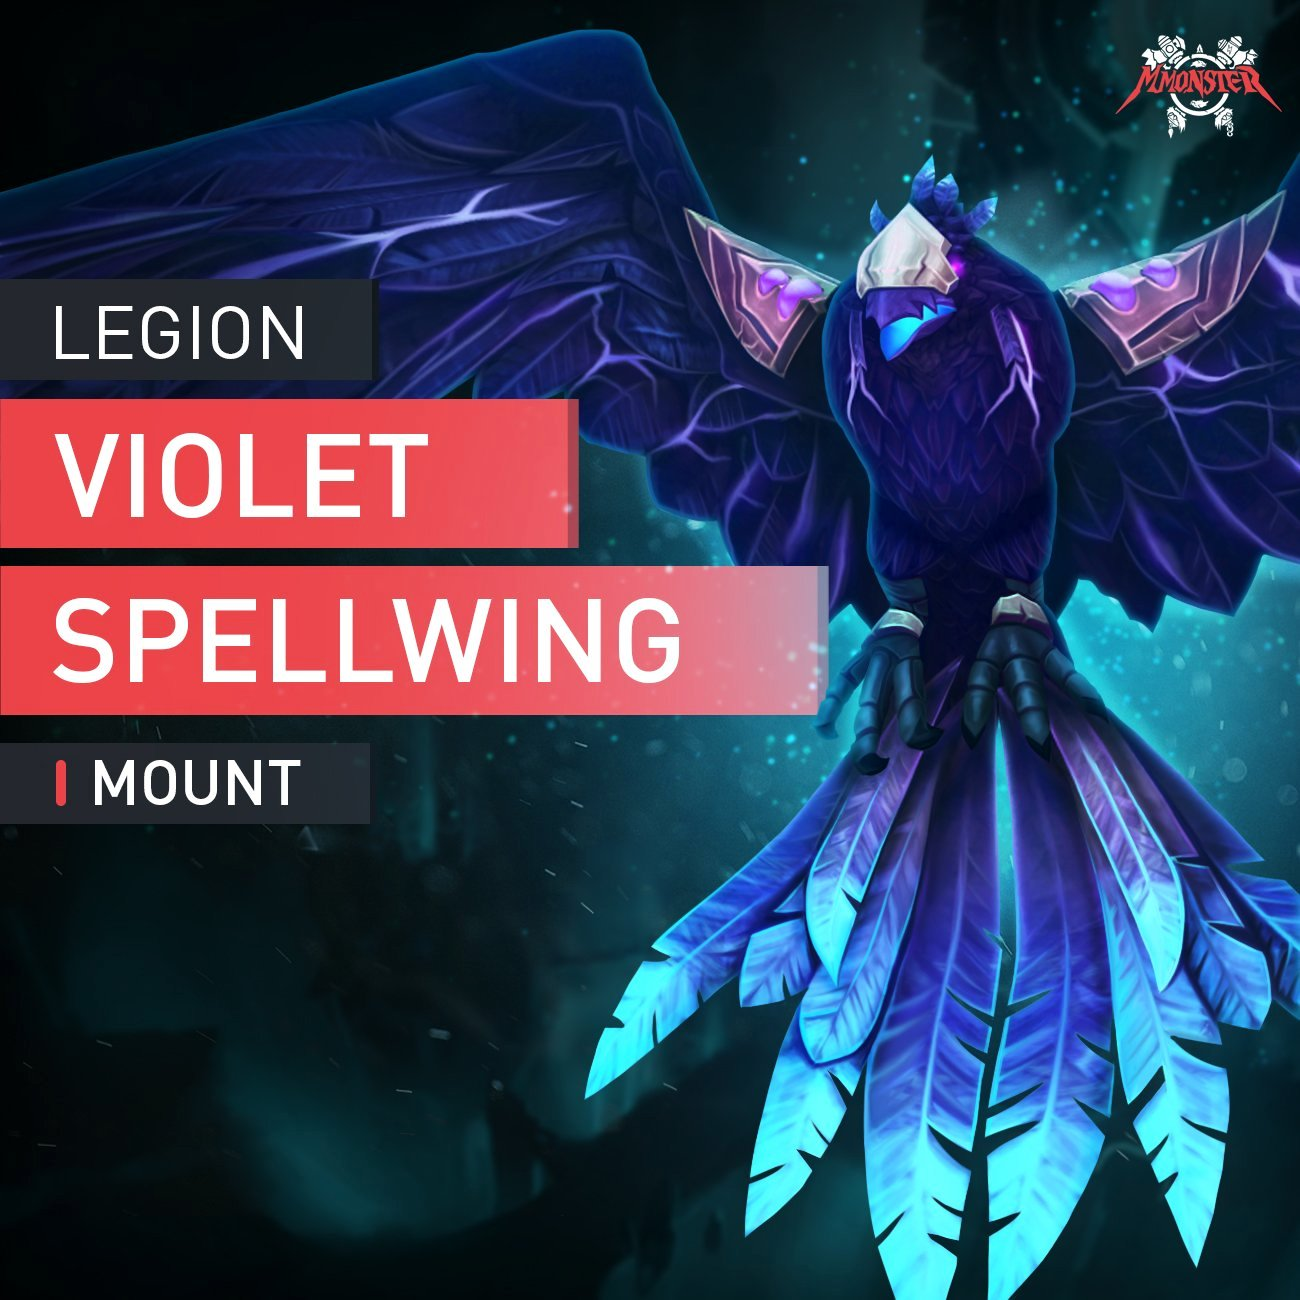 Violet Spellwing Mount - MMonster